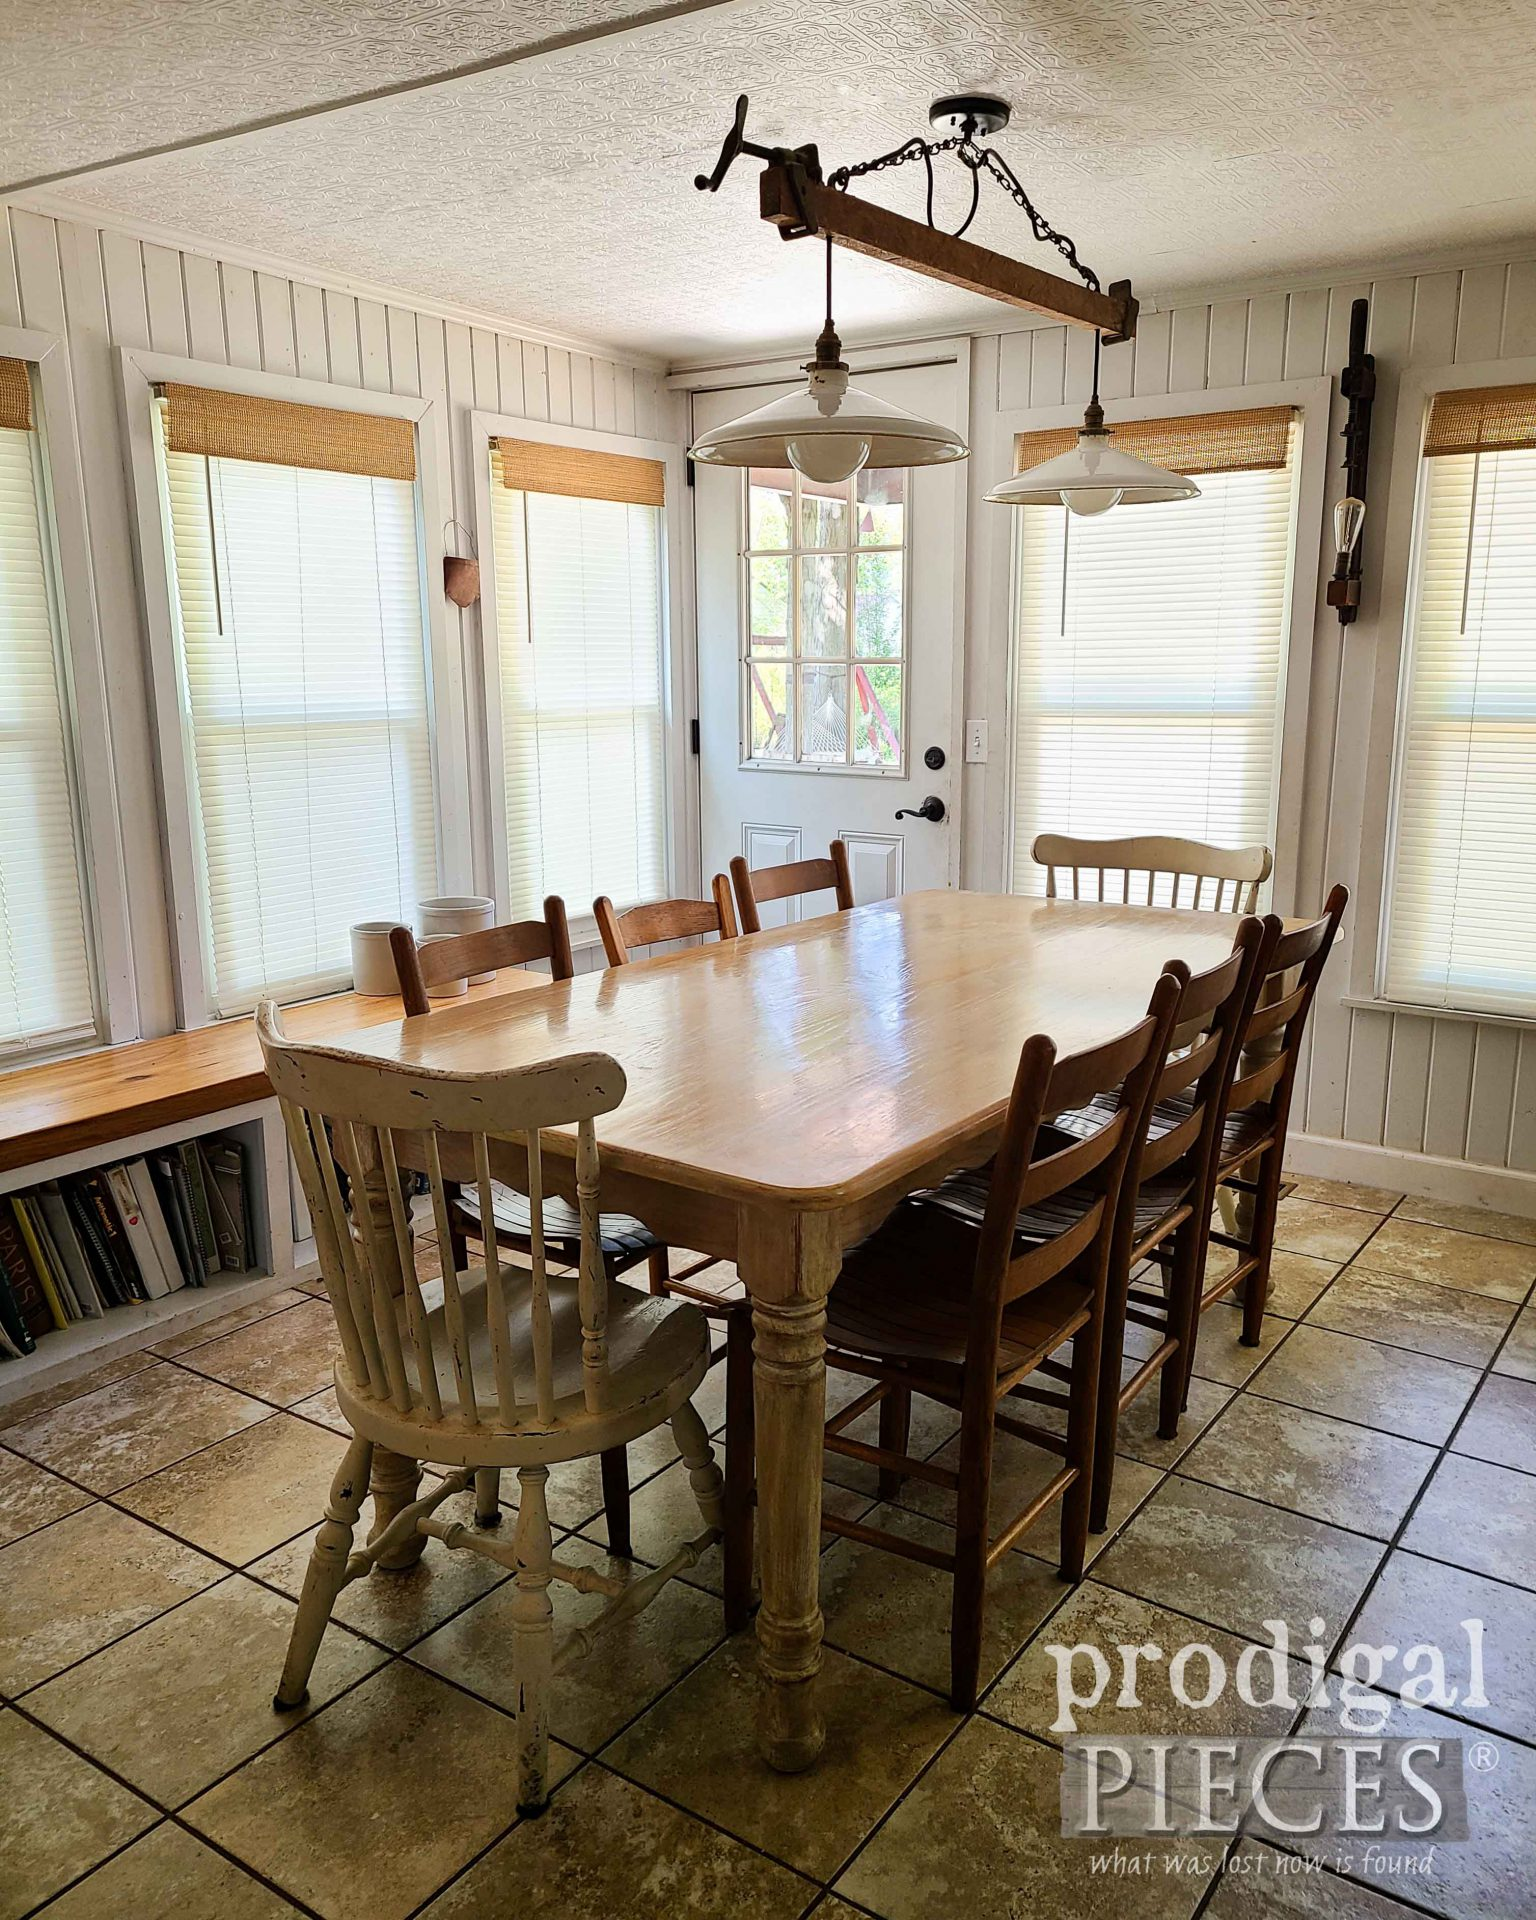 Dining Table Before Farmhouse Tablescape for Fall by Prodigal Pieces | prodigalpieces.com #prodigalpieces #diy #home #farmhouse #fall #tablescape